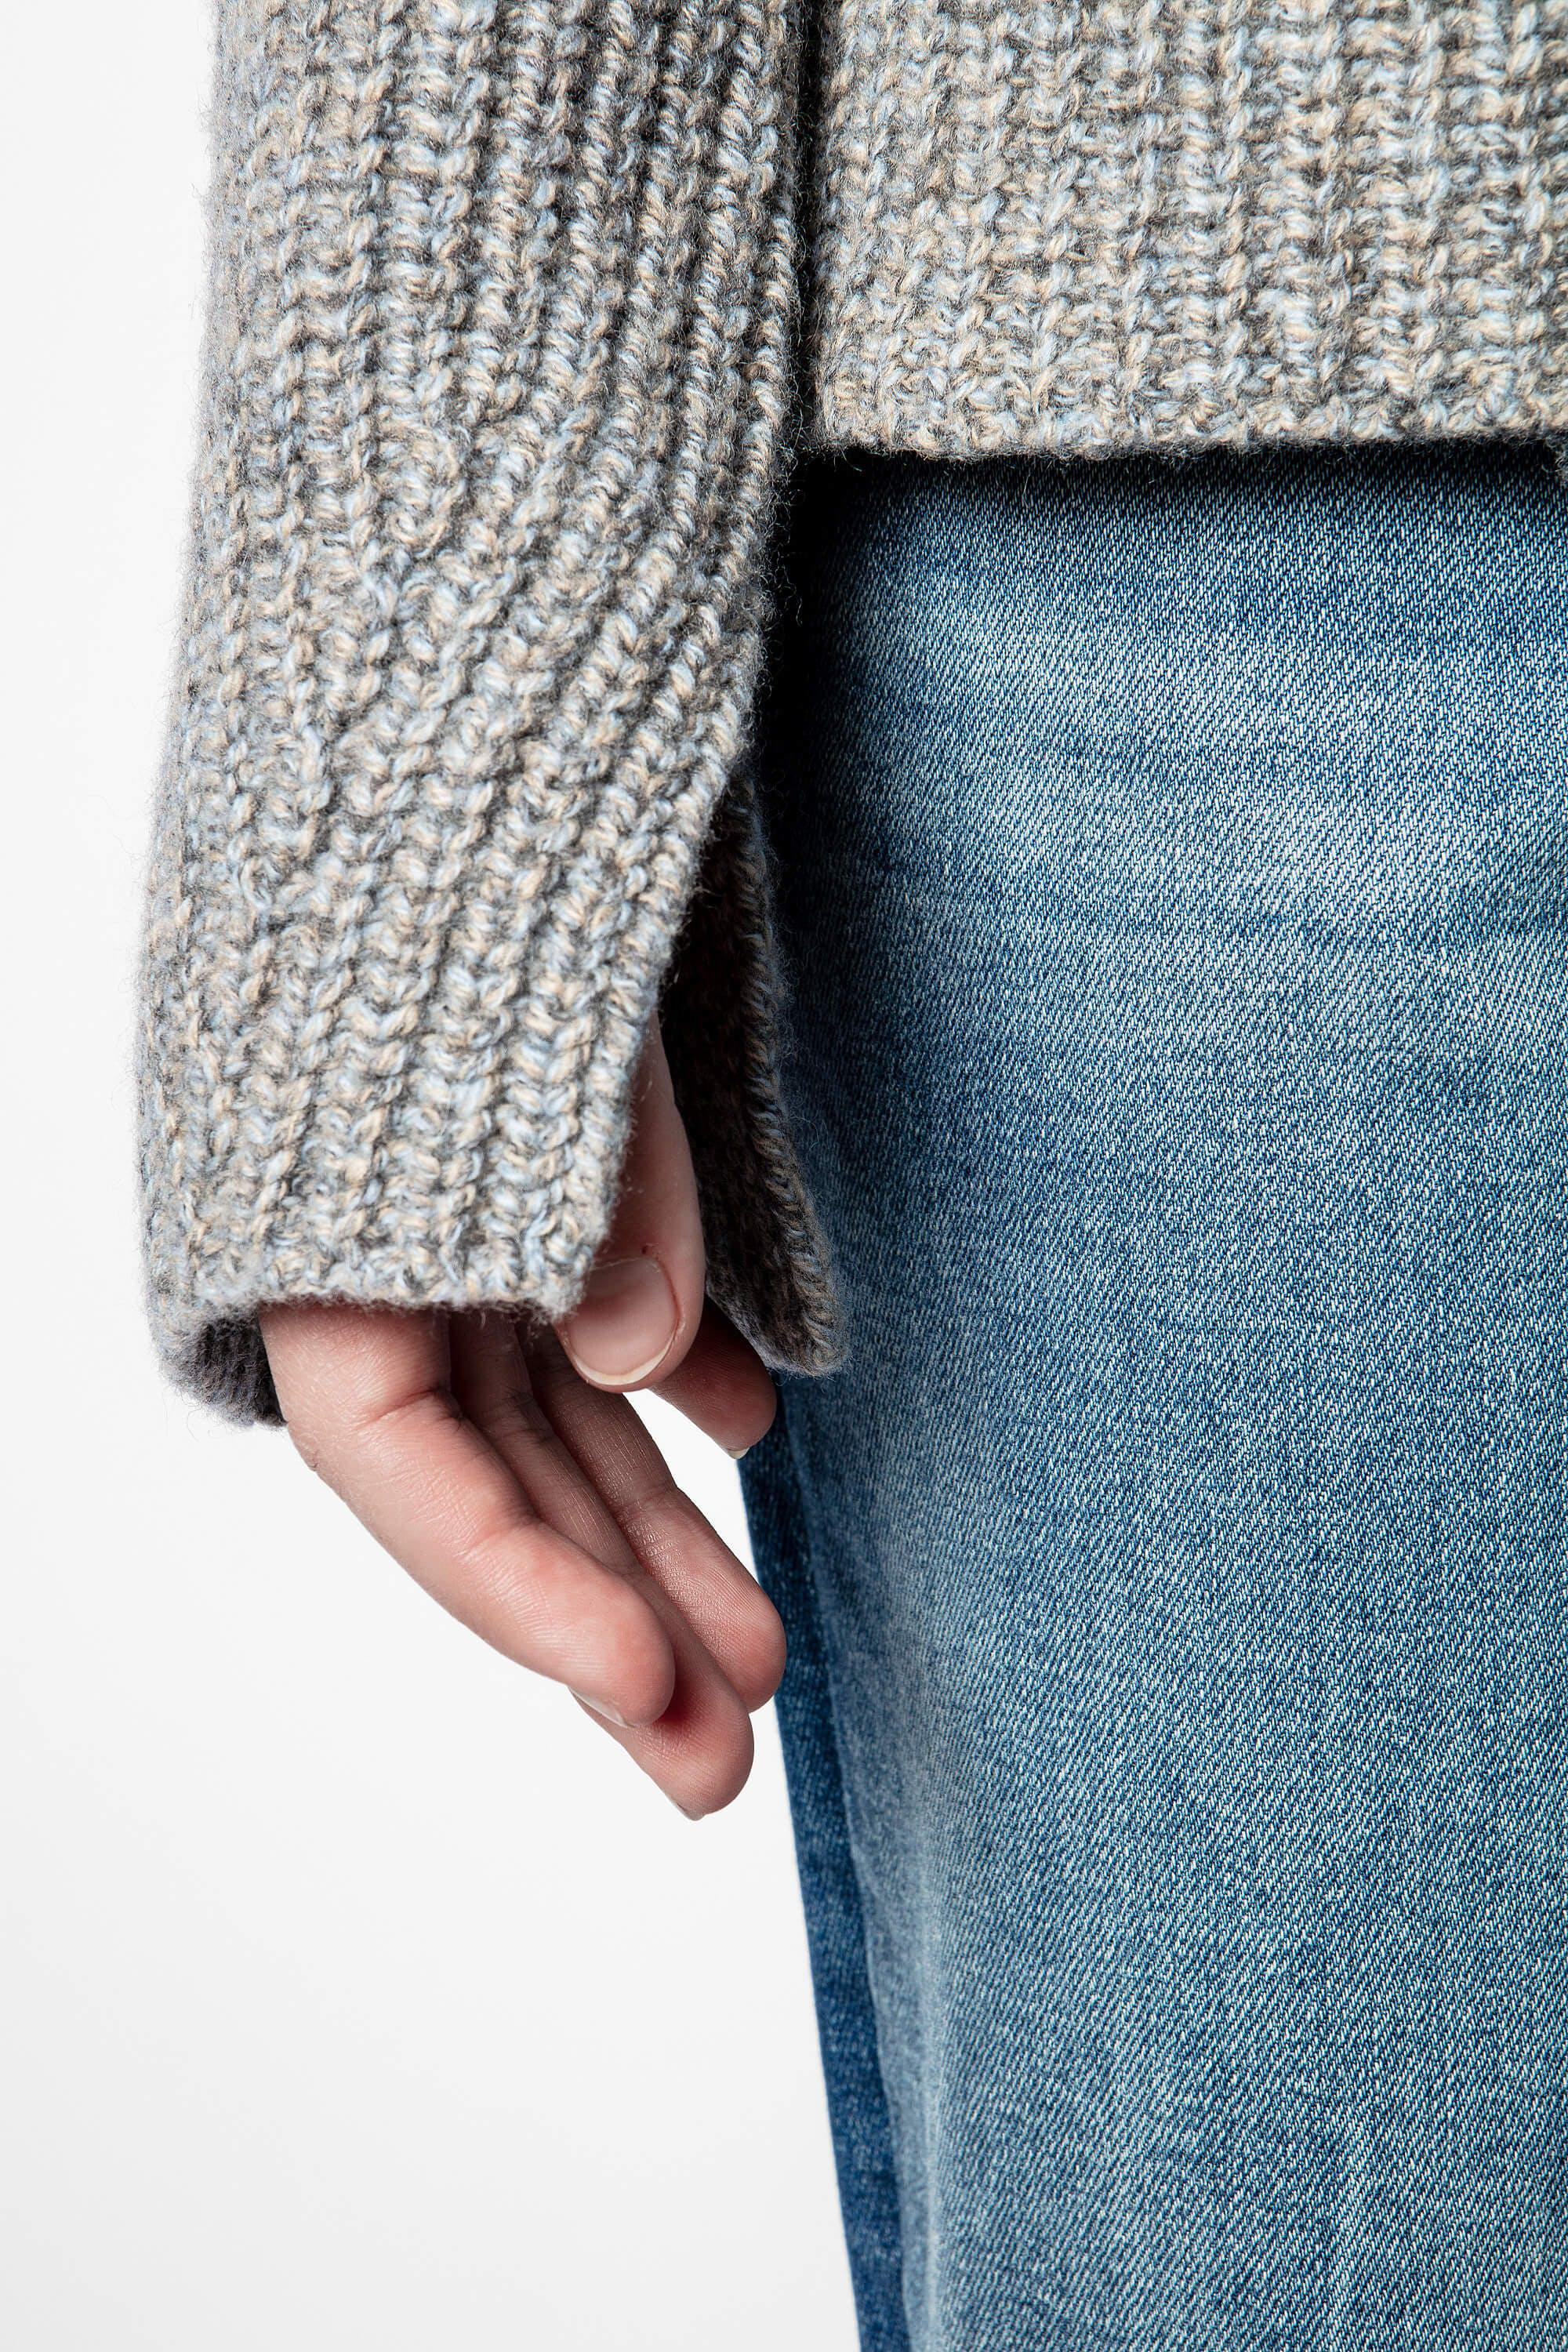 Dilly Recycled Cardigan 4